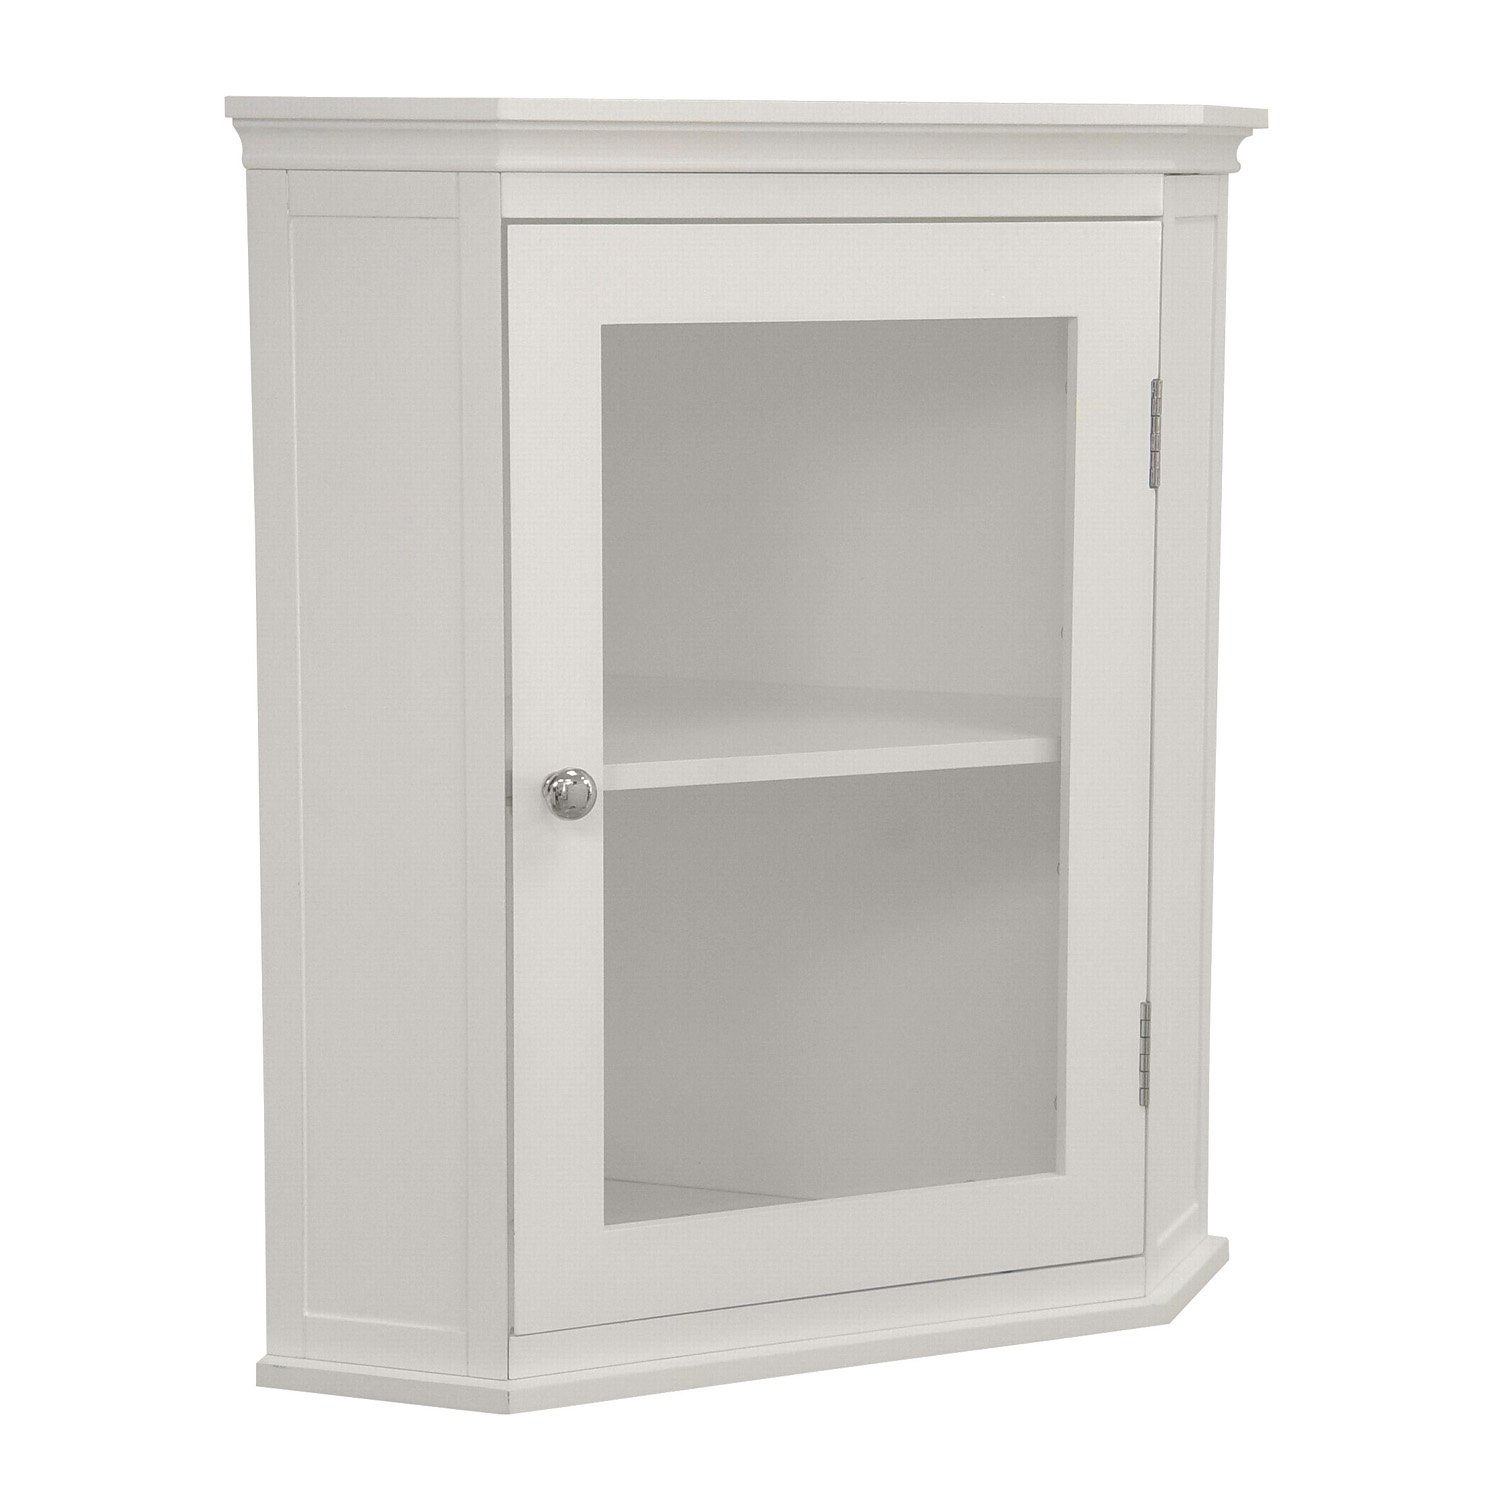 Amazon.com Elegant Home Fashions Madison Collection Shelved Corner Wall Cabinet White Kitchen u0026 Dining  sc 1 st  Amazon.com & Amazon.com: Elegant Home Fashions Madison Collection Shelved Corner ...